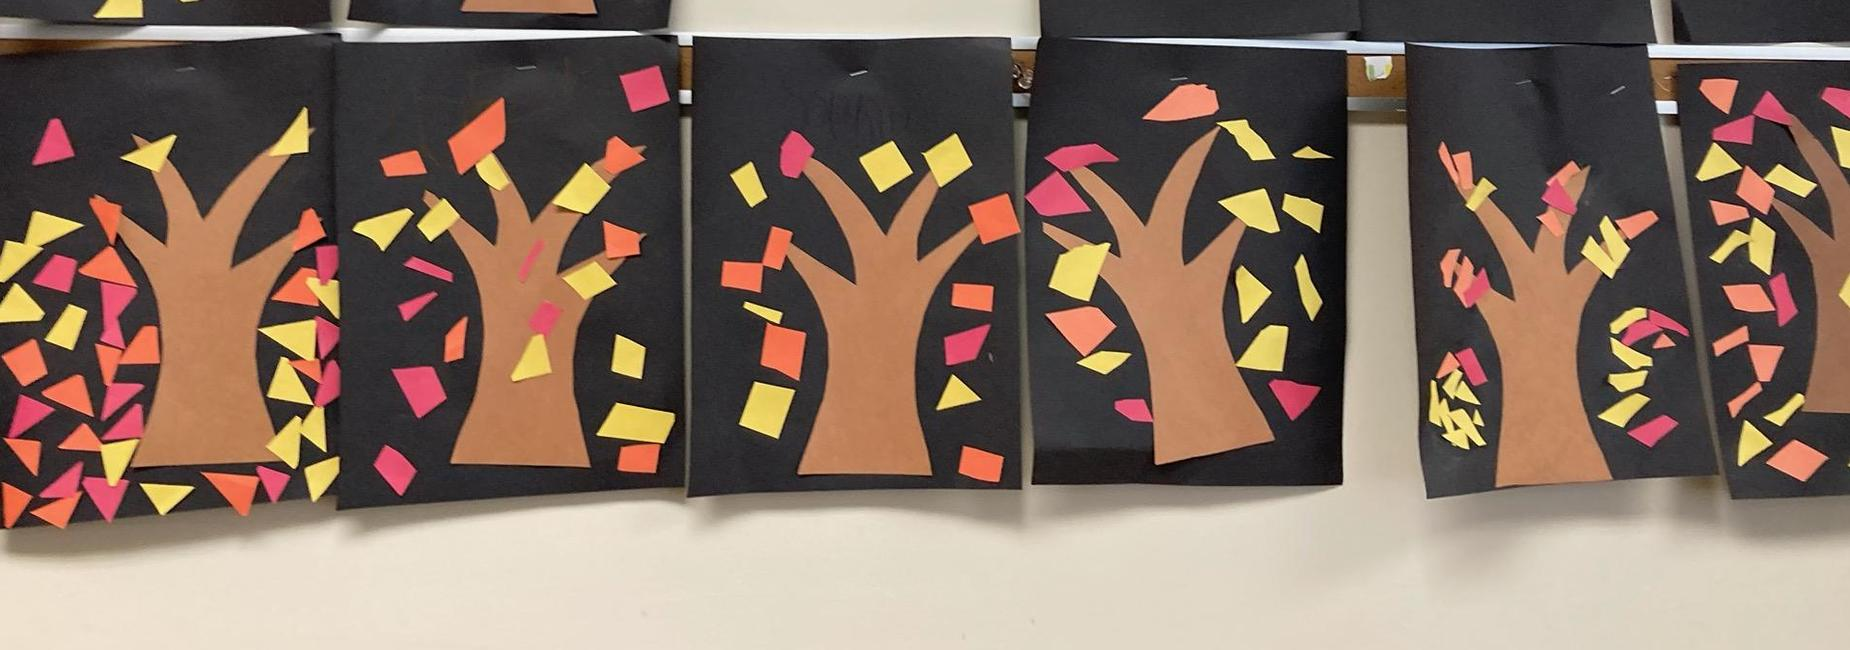 Student created artwork of trees with red, orange, and yellow leaves falling